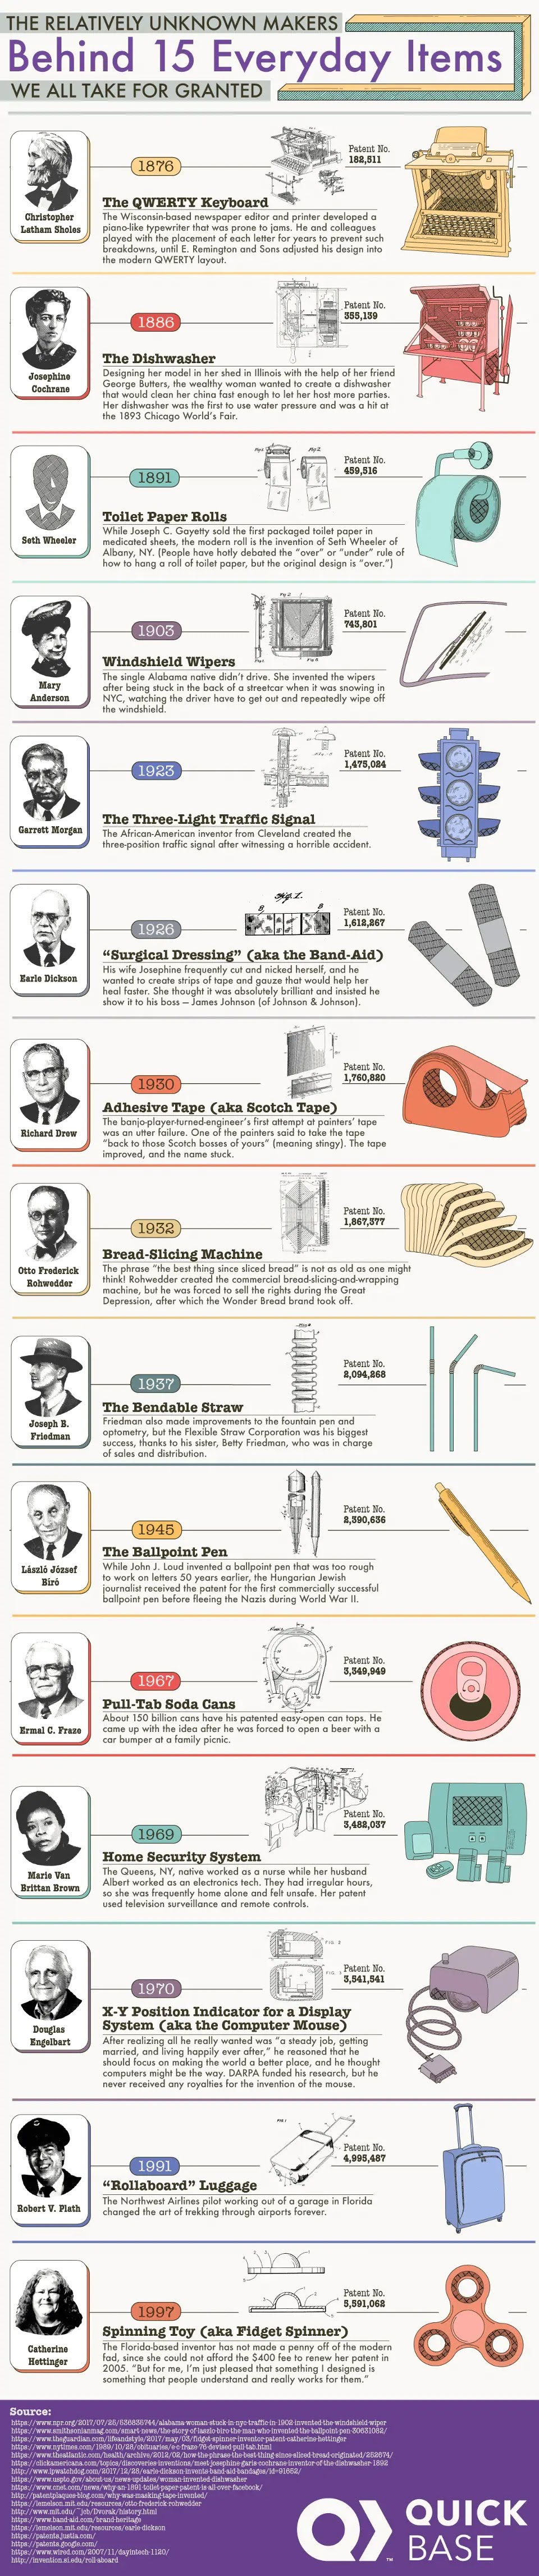 The Relatively Unknown Makers Behind Everyday #infographic